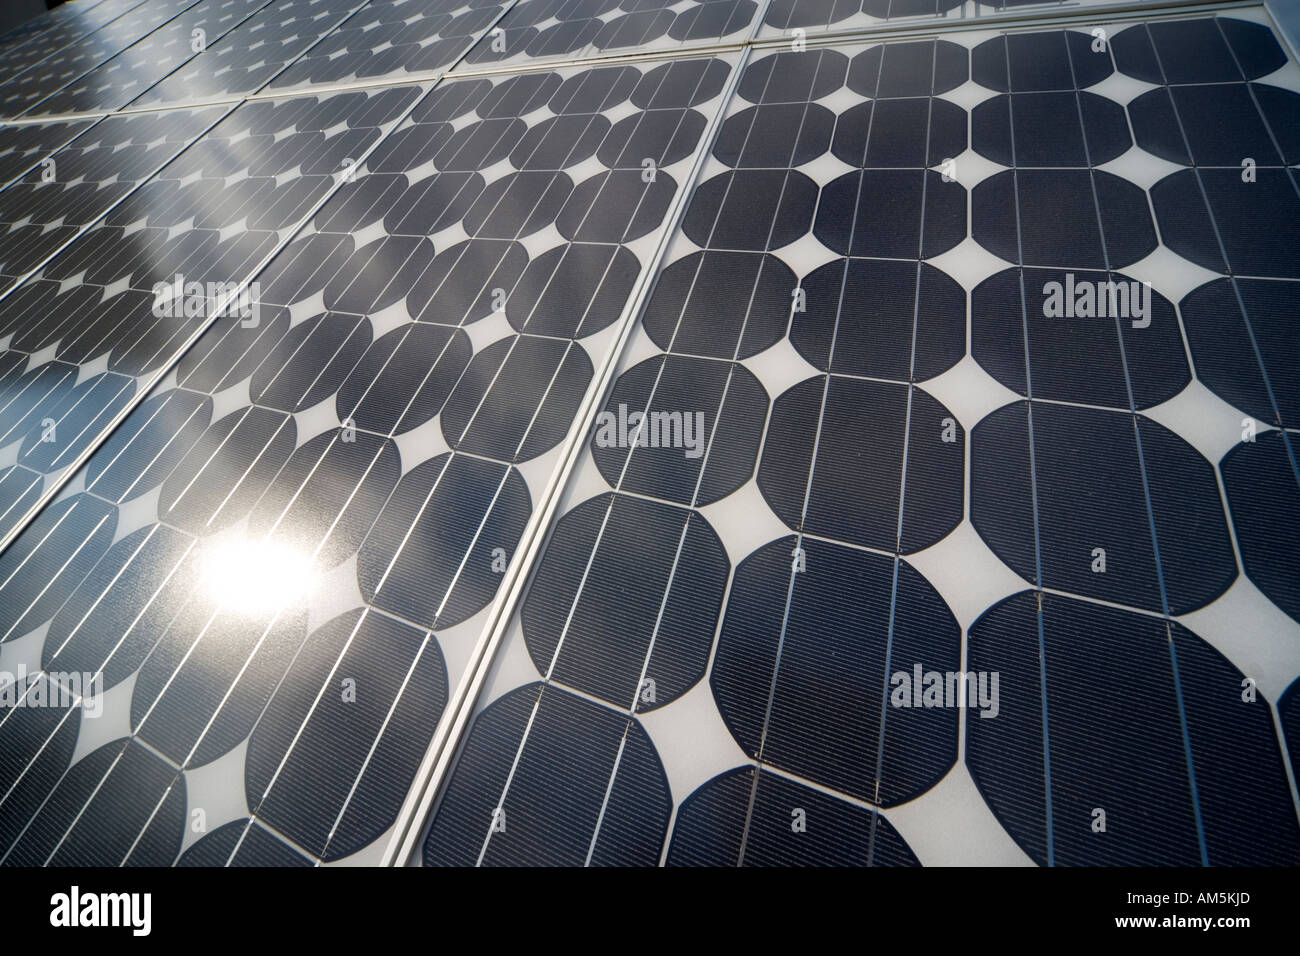 Solar panels producing electricity. Rows of monocrystalline photovoltaic solar cells. - Stock Image